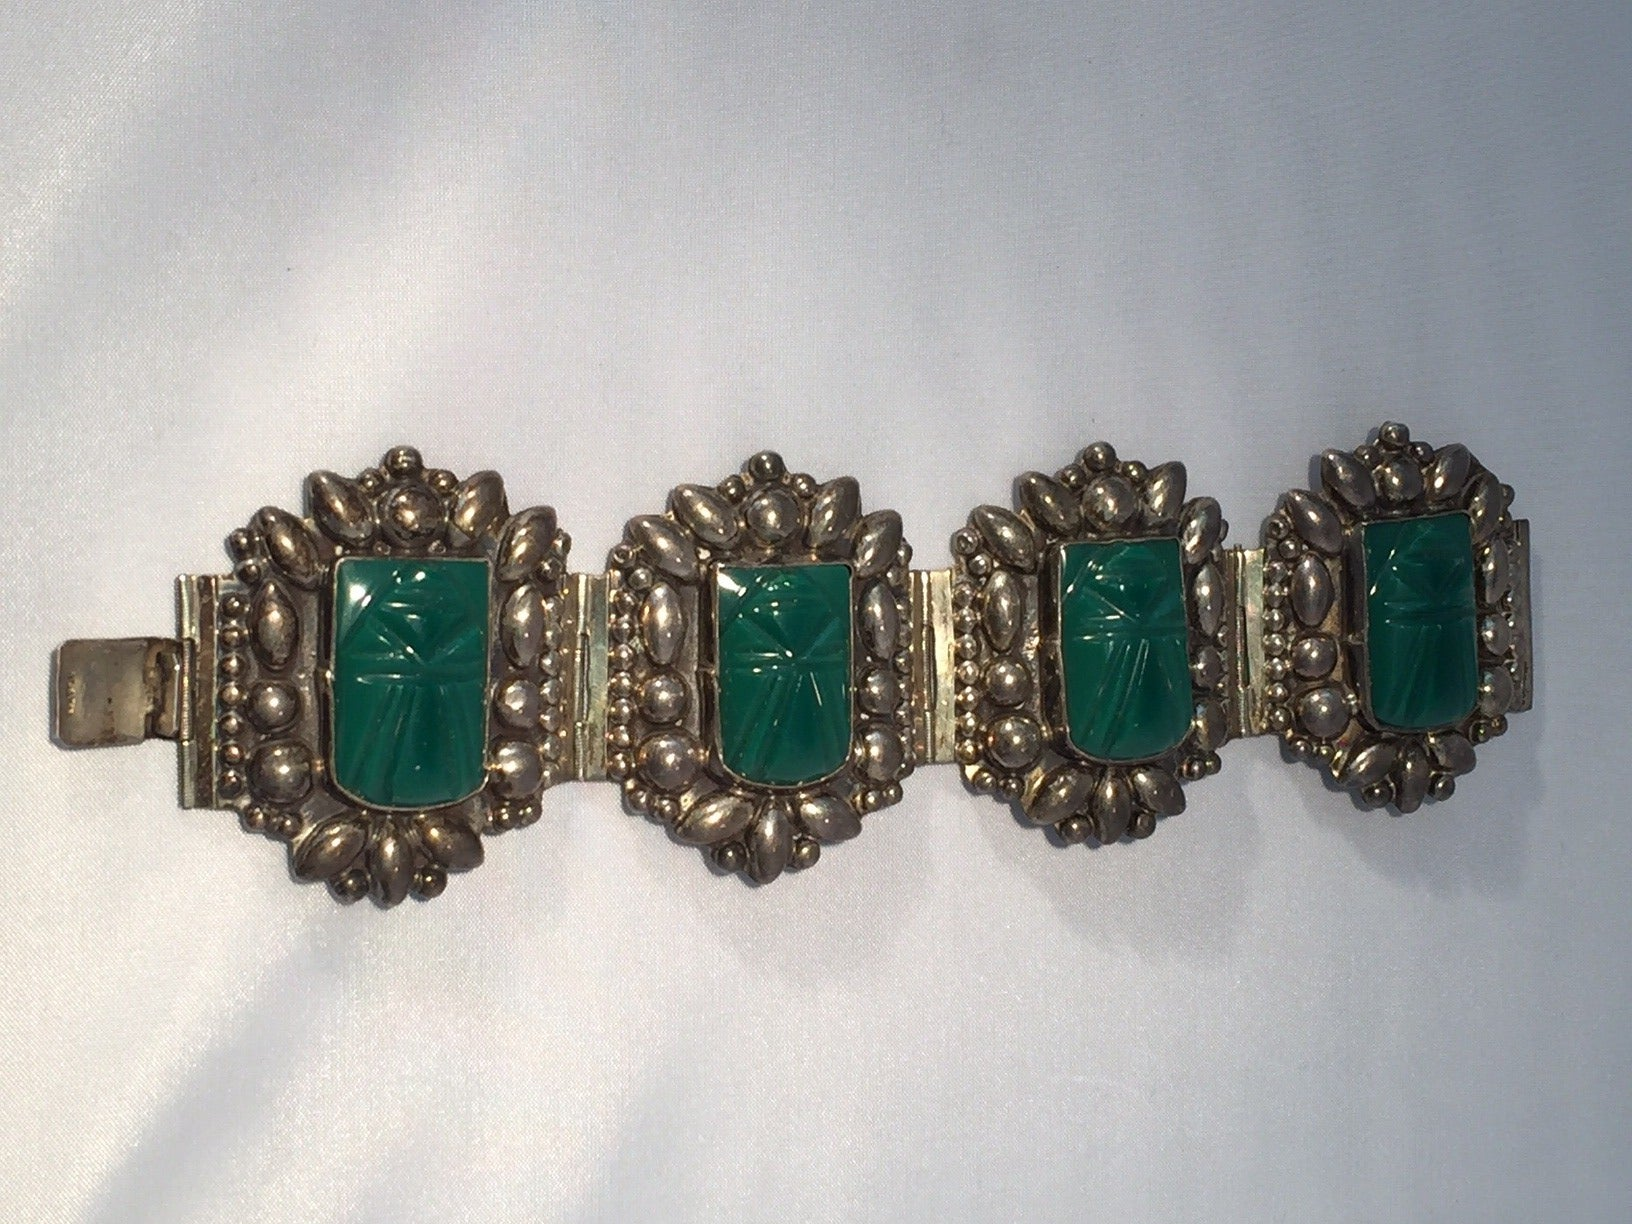 1940s Mexican Silver Hinged Cuff Bracelet with Jadeite Masks 3